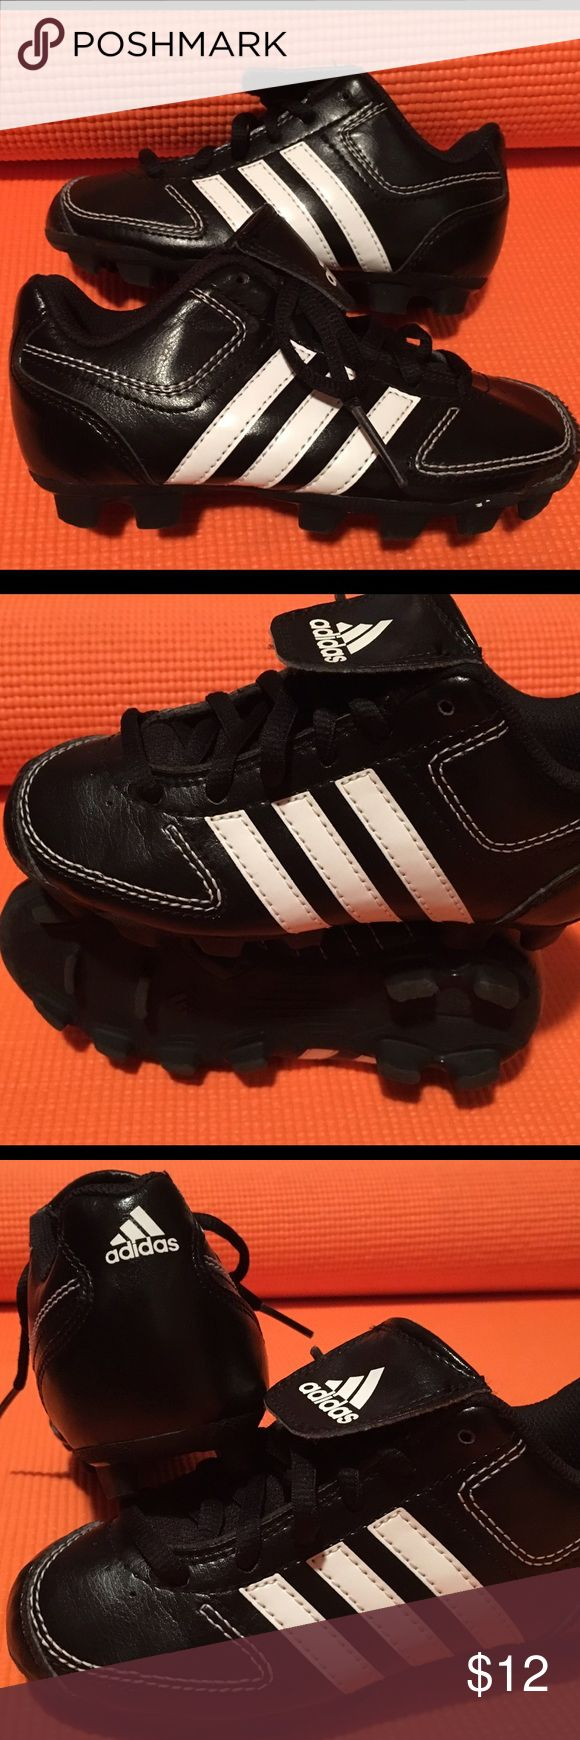 Adidas Cleats Kids Size 11 Take me out to the ball game.... little kids cleats size 11 in VERY GOOD condition Adidas Shoes